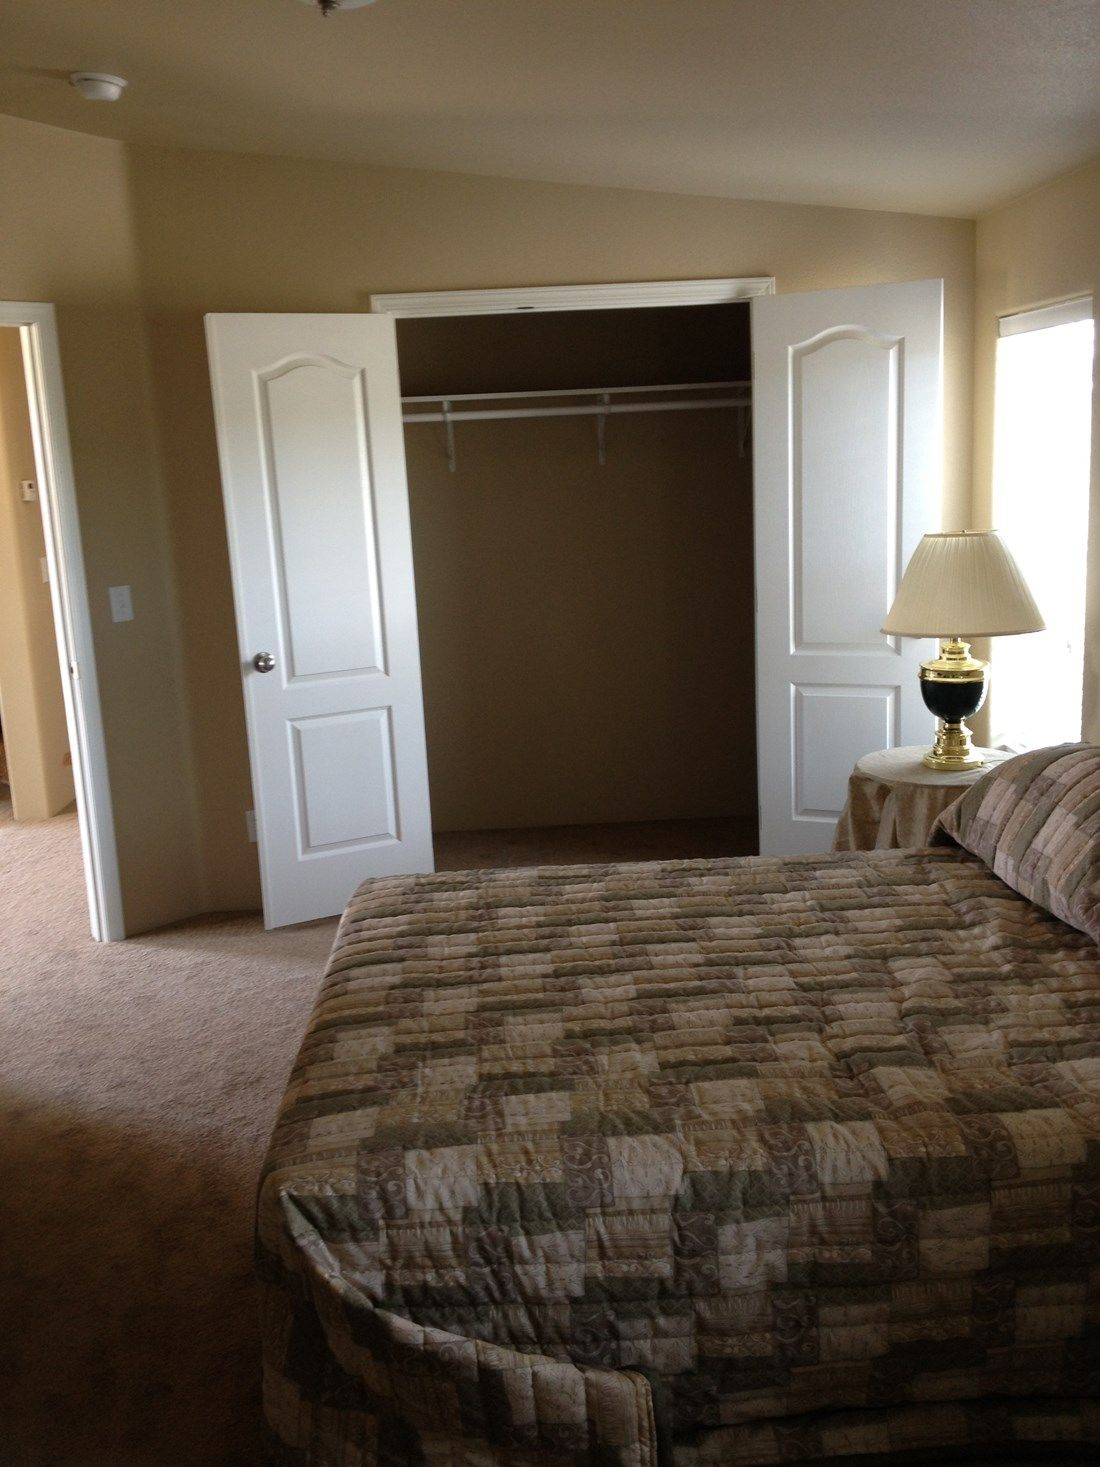 The 2848 MARLETTE SPECIAL Master Bedroom. This Manufactured Mobile Home features 3 bedrooms and 2 baths.